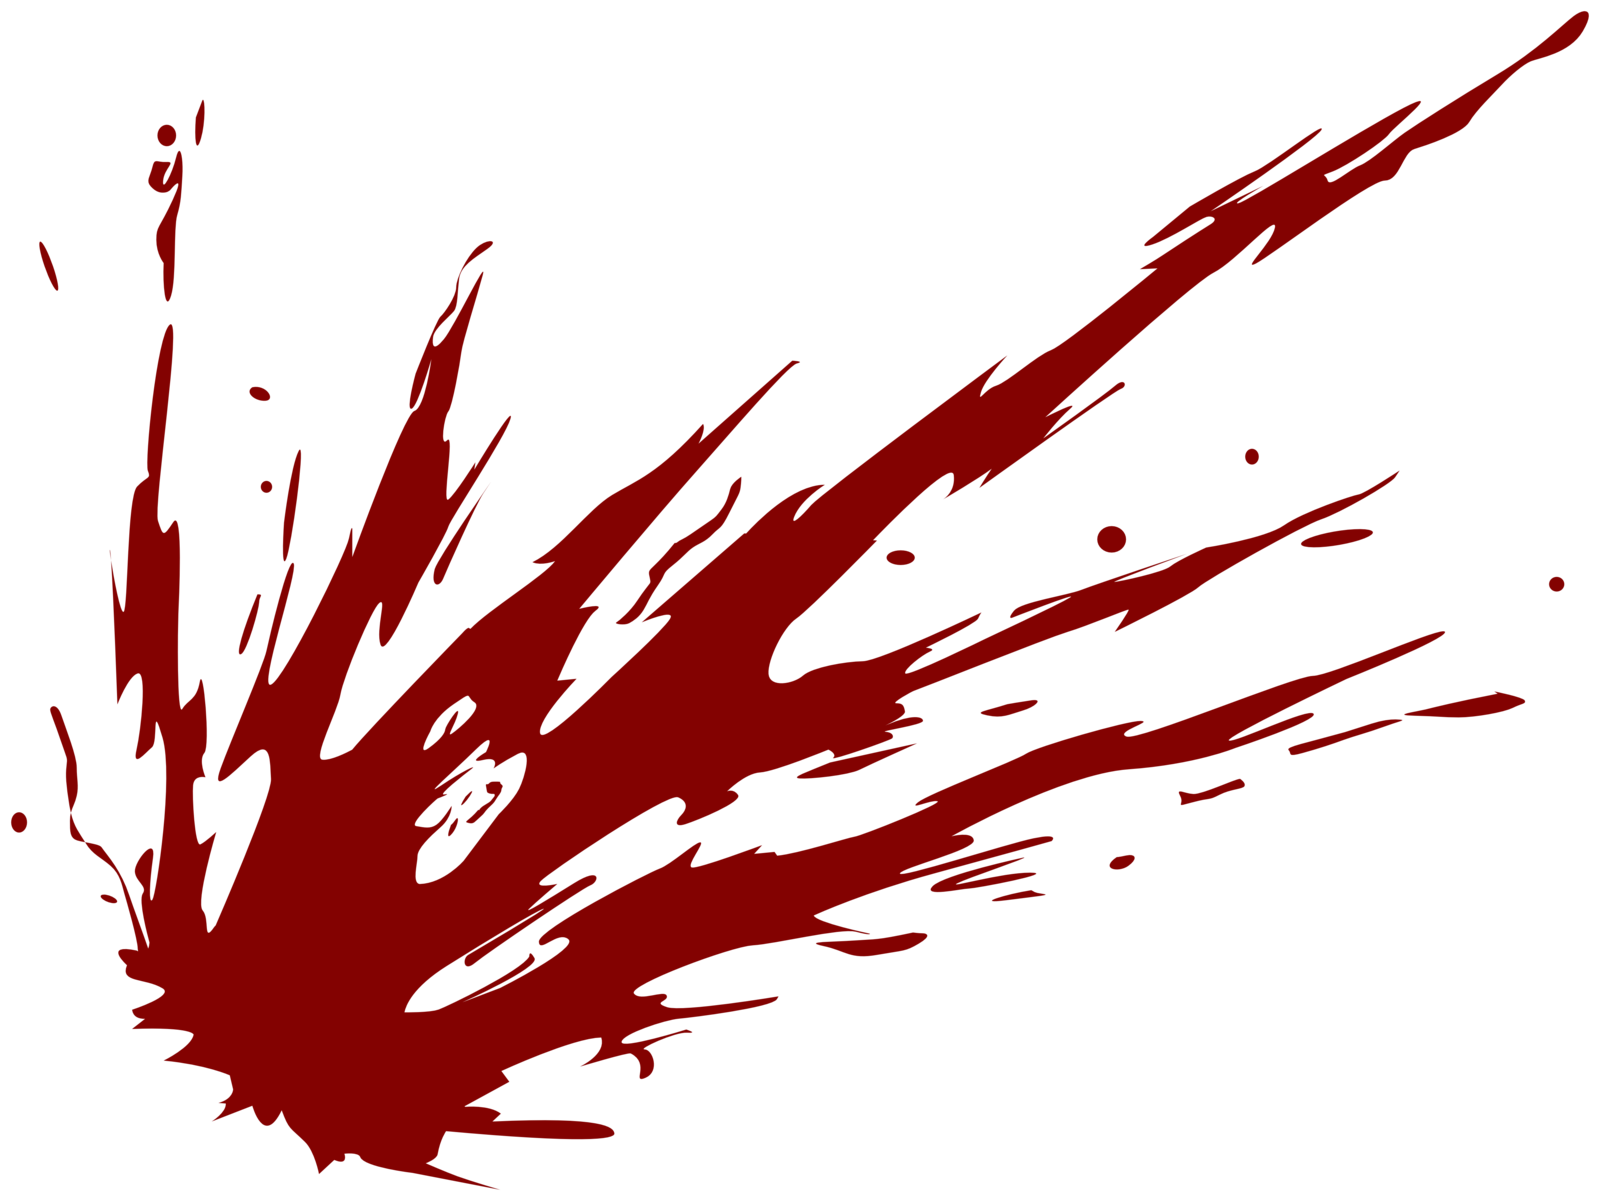 Blood Vector Png - ClipArt Best